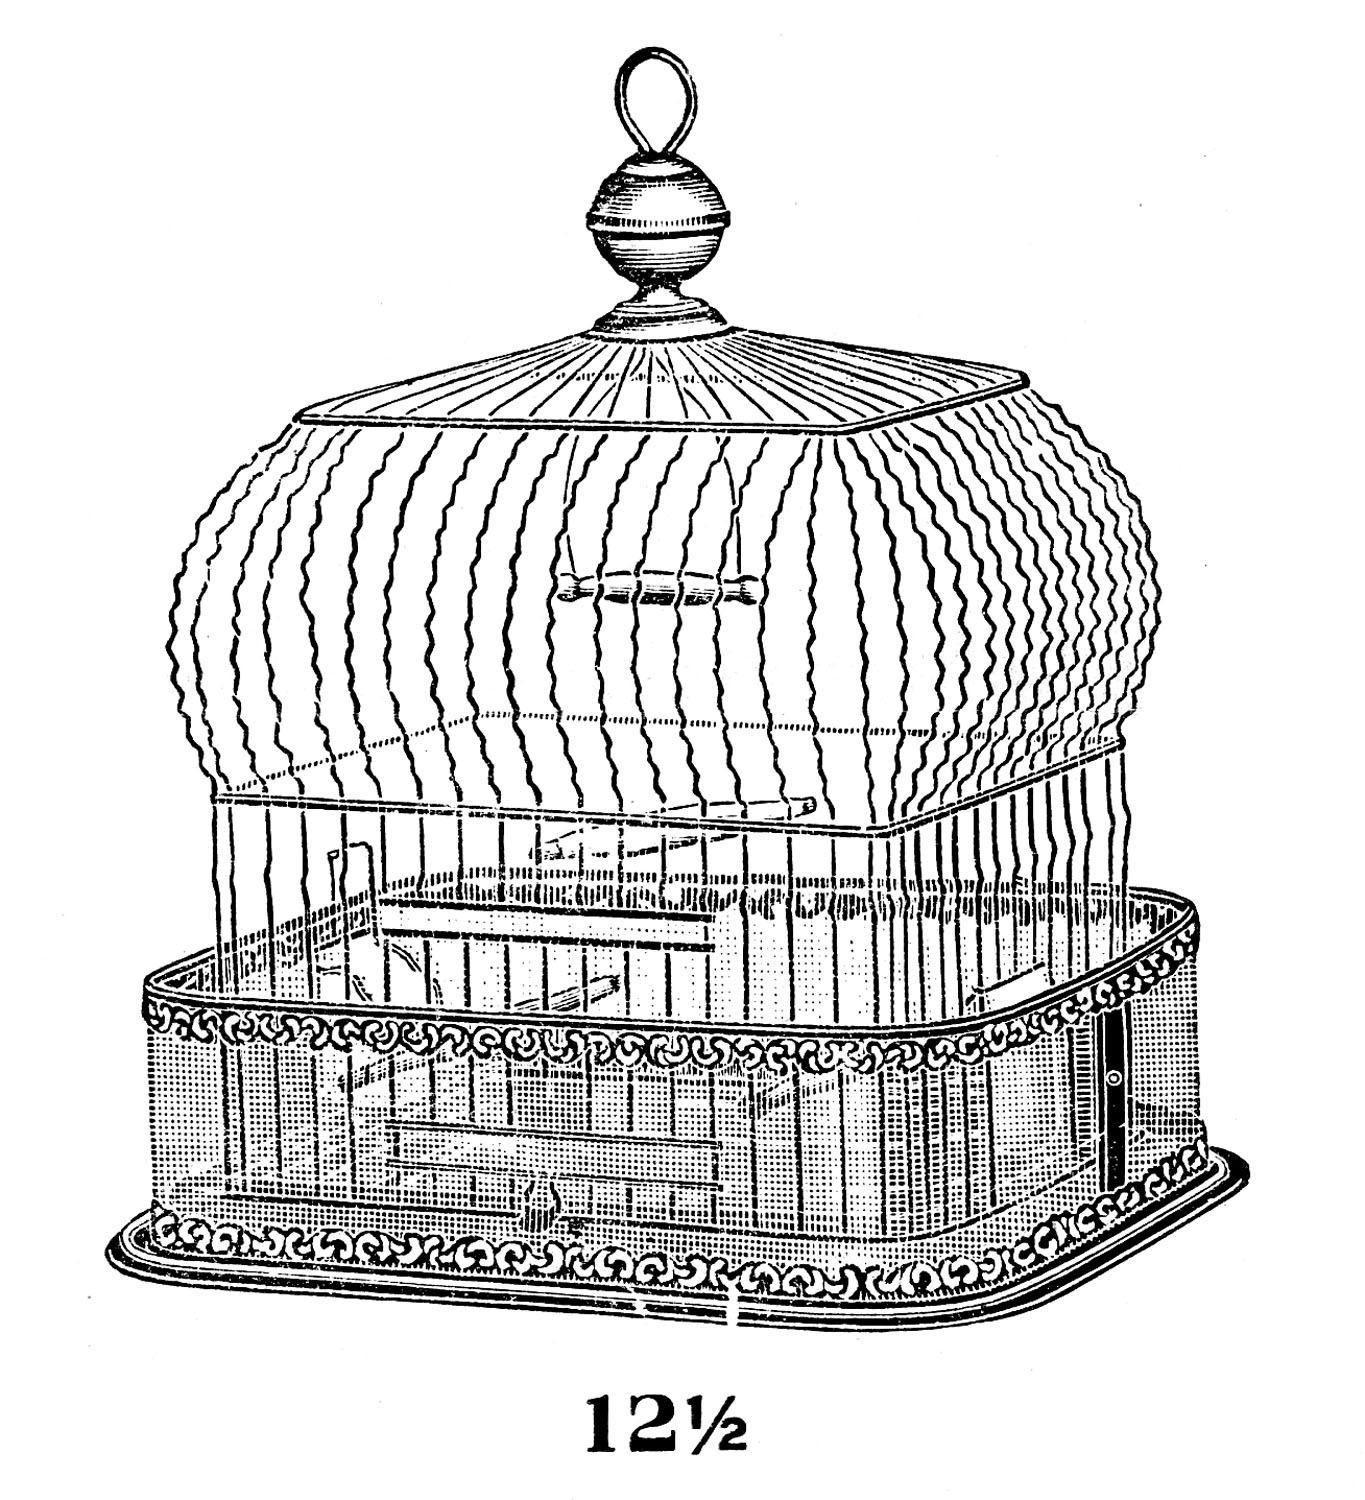 Antique bird cage drawing - photo#13